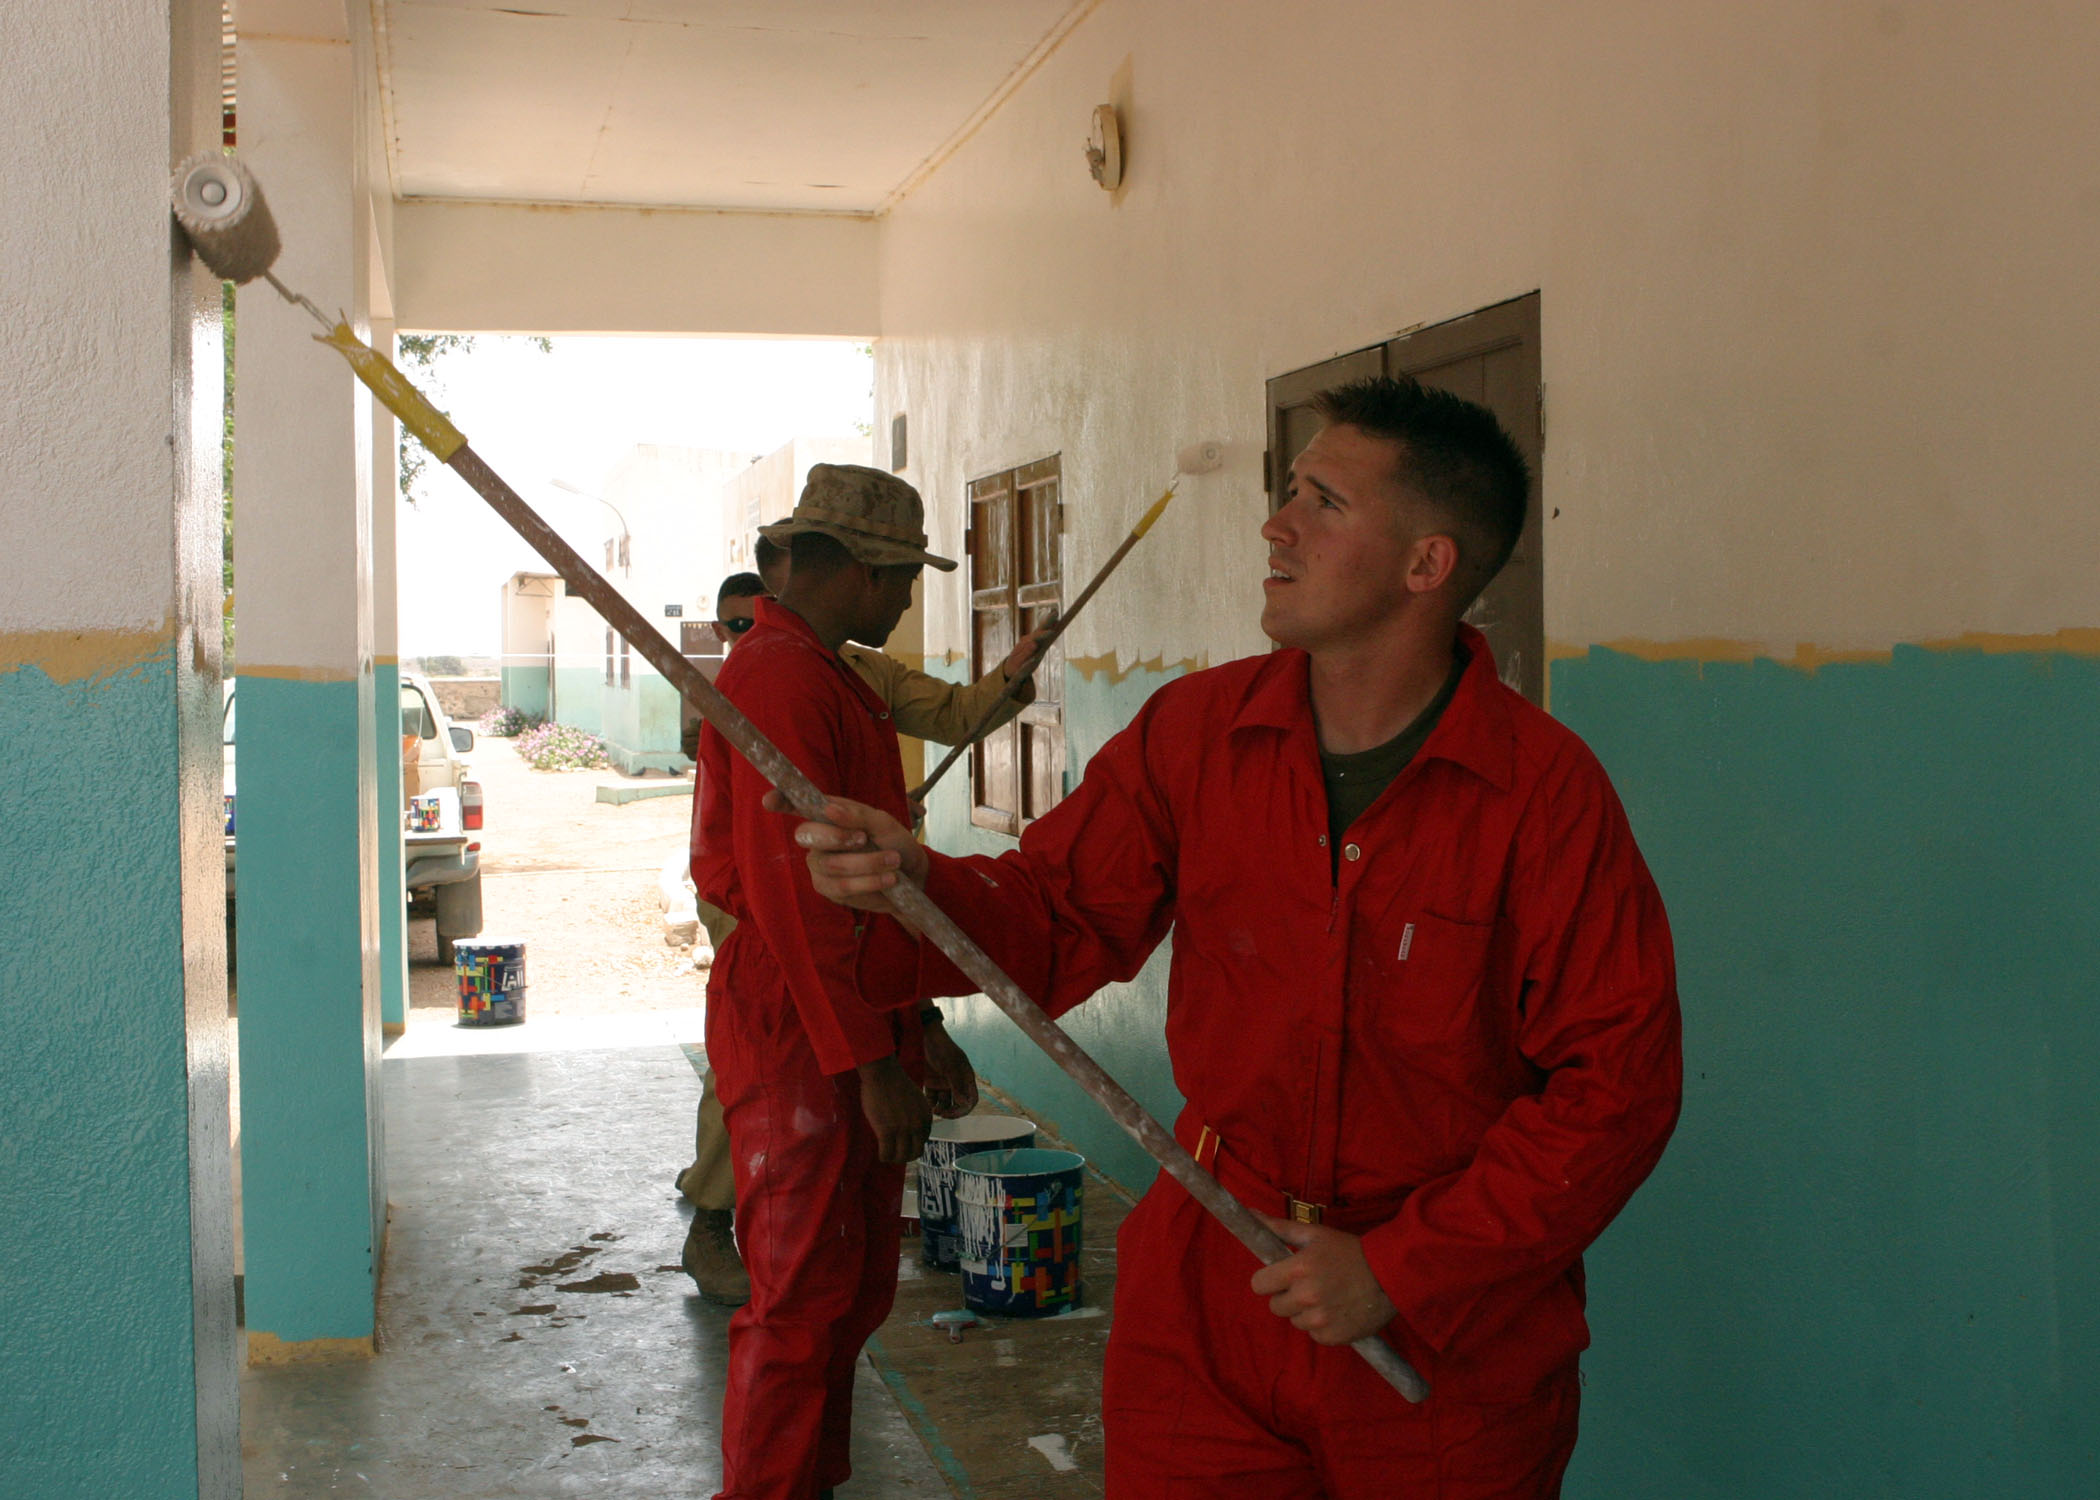 Lance Cpl. Adam Bautz Participates in a Community Relations Project in Djibouti, Africa